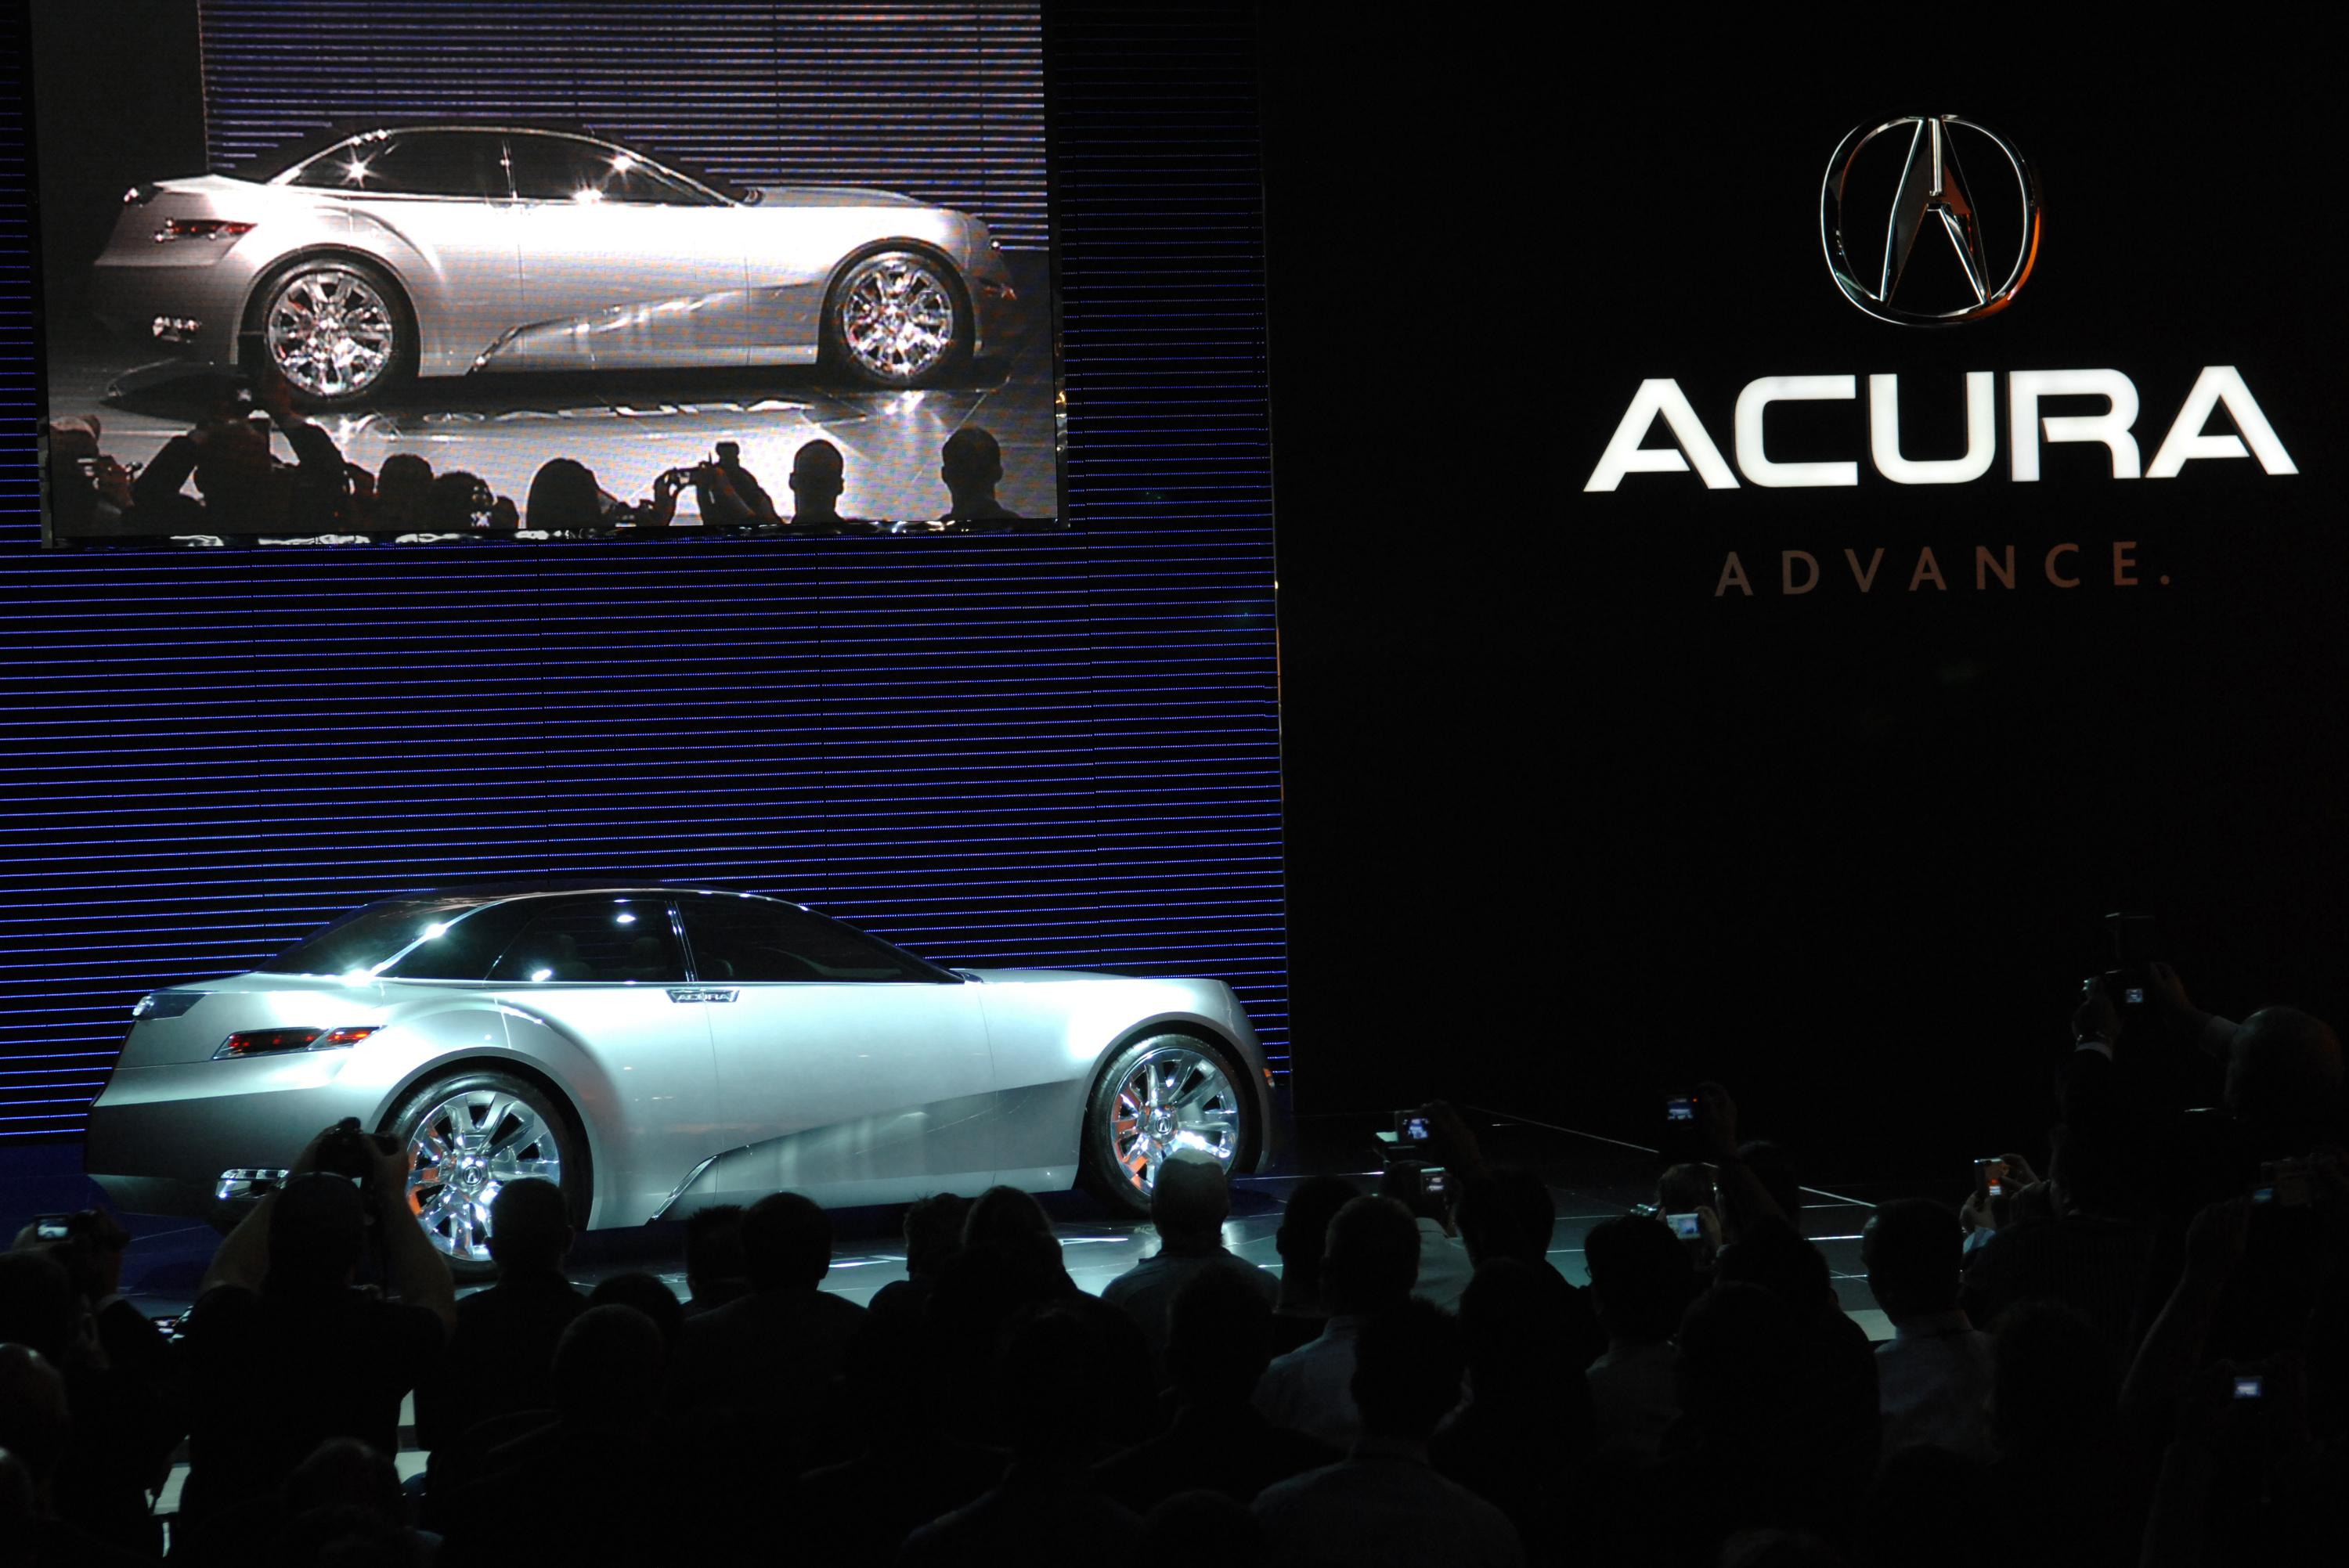 2007 Acura Advanced Sports Car Concept Review   Top Speed. »